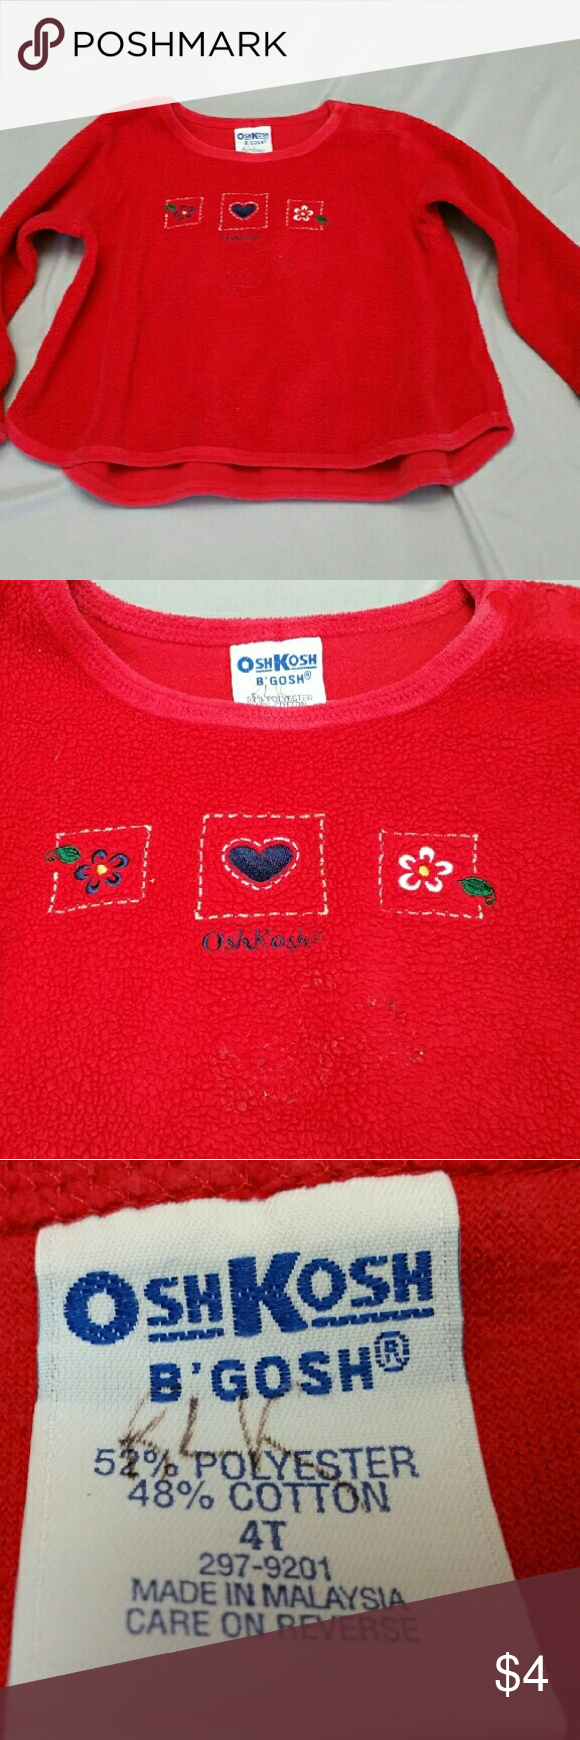 OshKosh B'Gosh 4 t fleece sweater Girls OshKosh B'gosh 4T fleece sweater for little girl. It's an excellent condition and it's absolutely adorable. Originally $16.99 now only $4!! I try to keep everything at least 75% off.  I typically ship same day or next Depending on time the order was placed. Thank you for checking out my closet and happy shopping!! OshKosh B'Gosh Shirts & Tops Sweaters